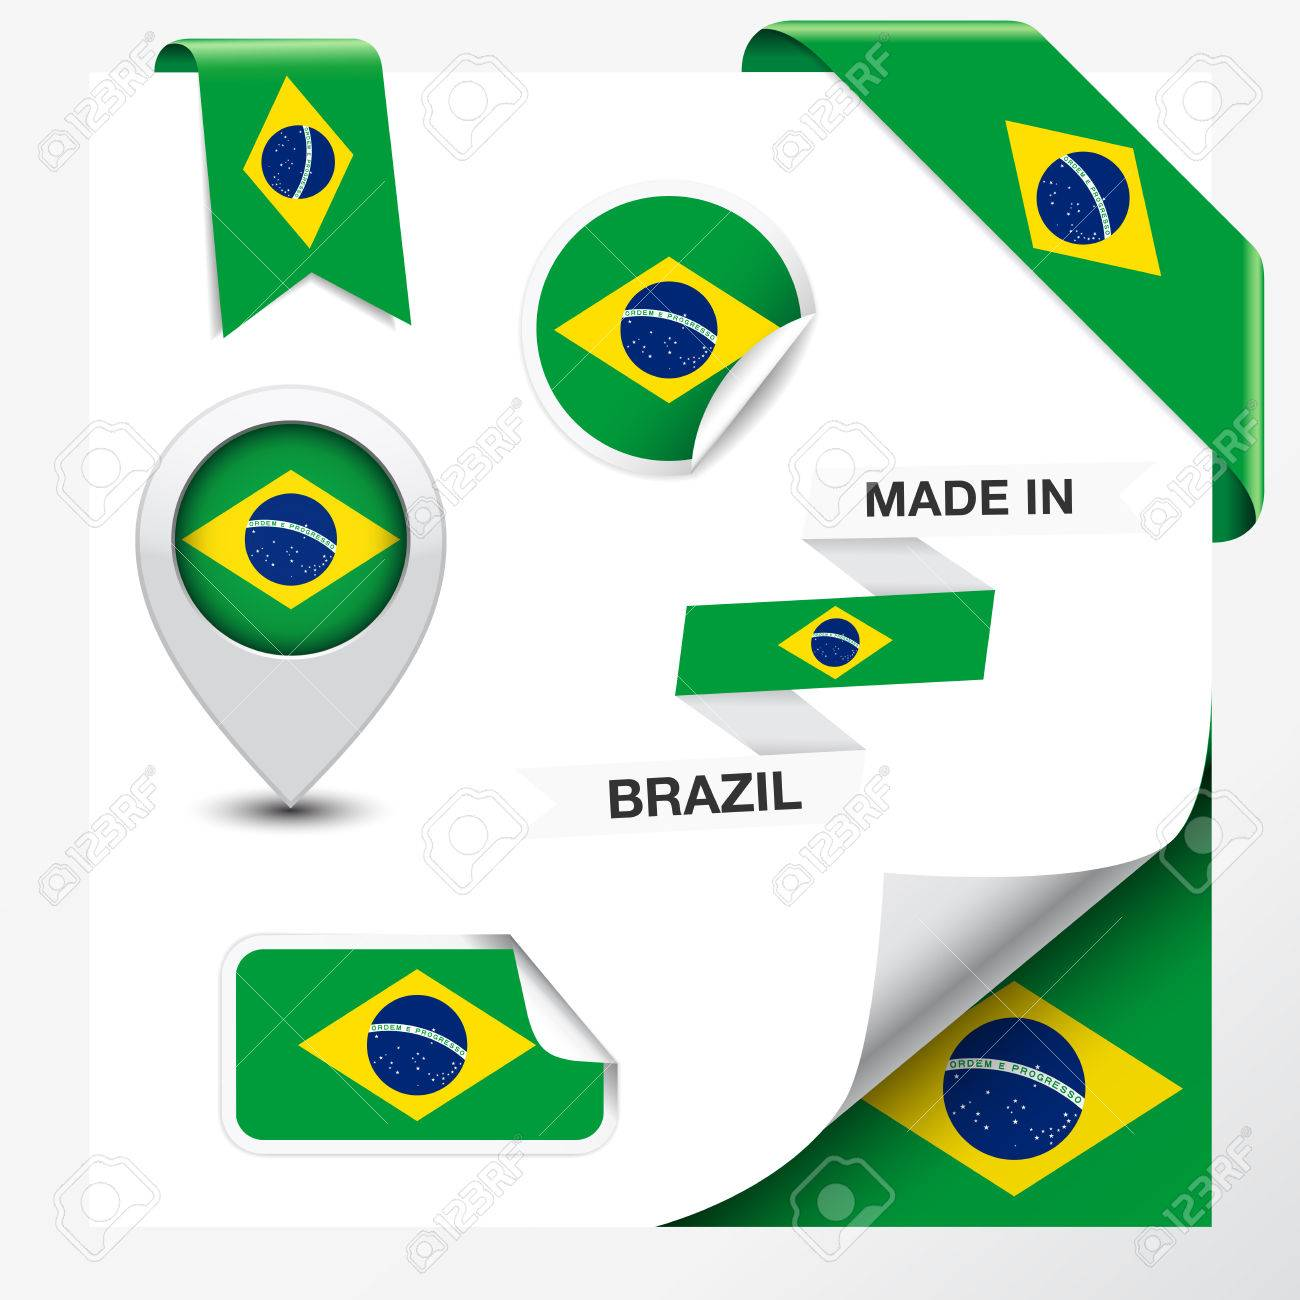 Handmade watercolor brazil flag brasil stock photos freeimages com - Brazil Flag Business Made In Brazil Collection Of Ribbon Label Stickers Pointer